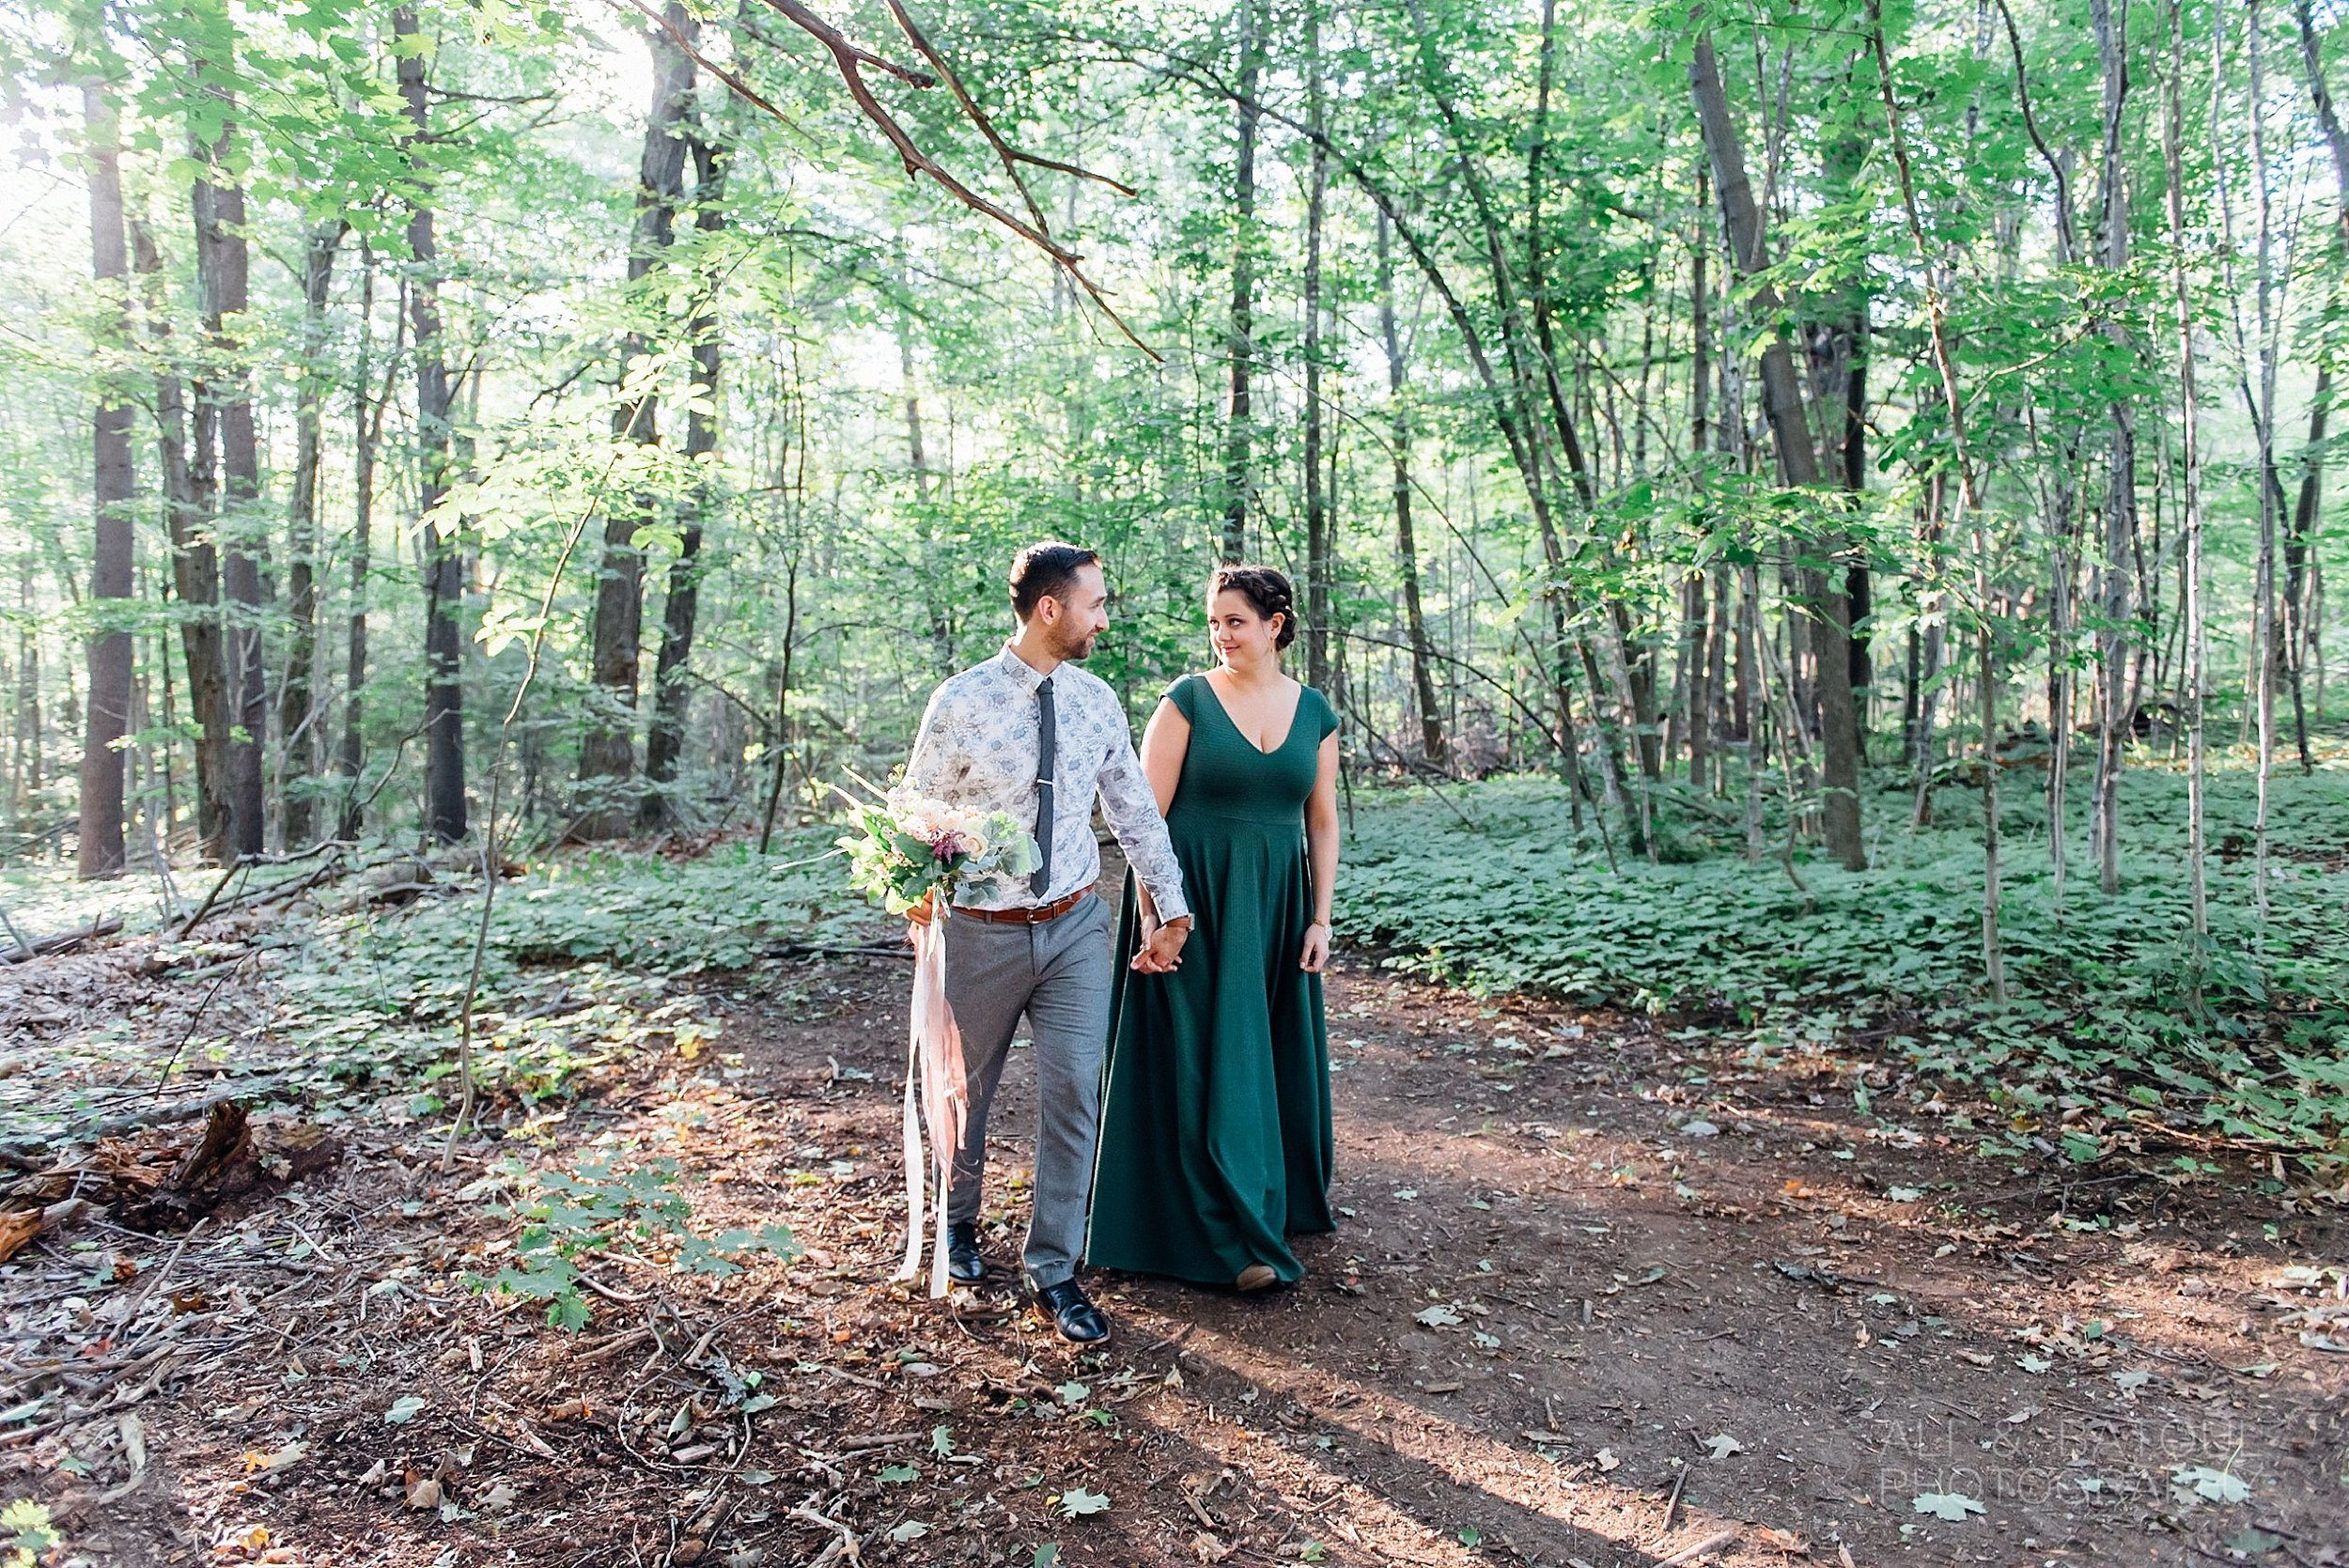 Ali and Batoul Photography - light, airy, indie documentary Ottawa wedding photographer_0067.jpg